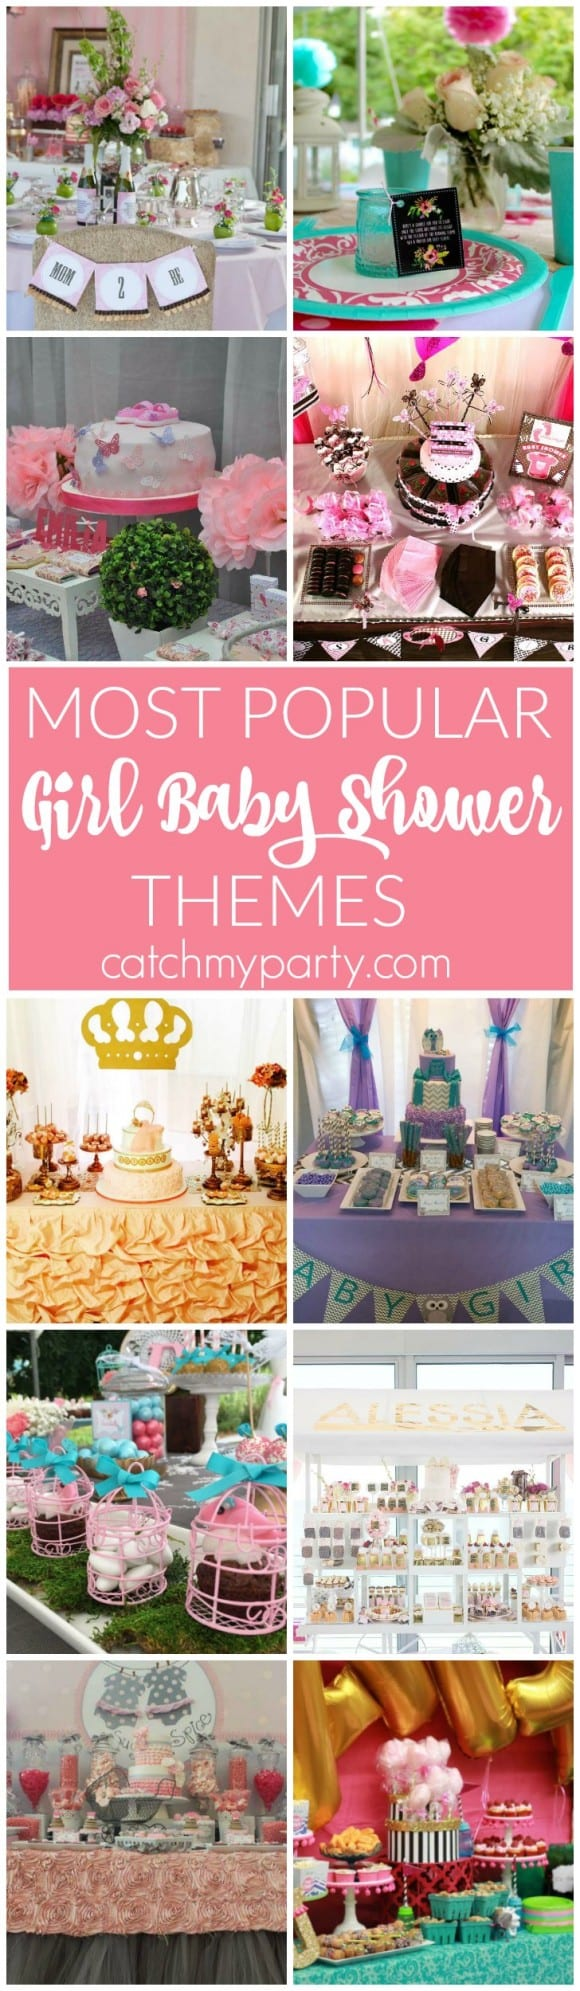 Most Popular Girl Baby Shower Themes | Catchmyparty.com